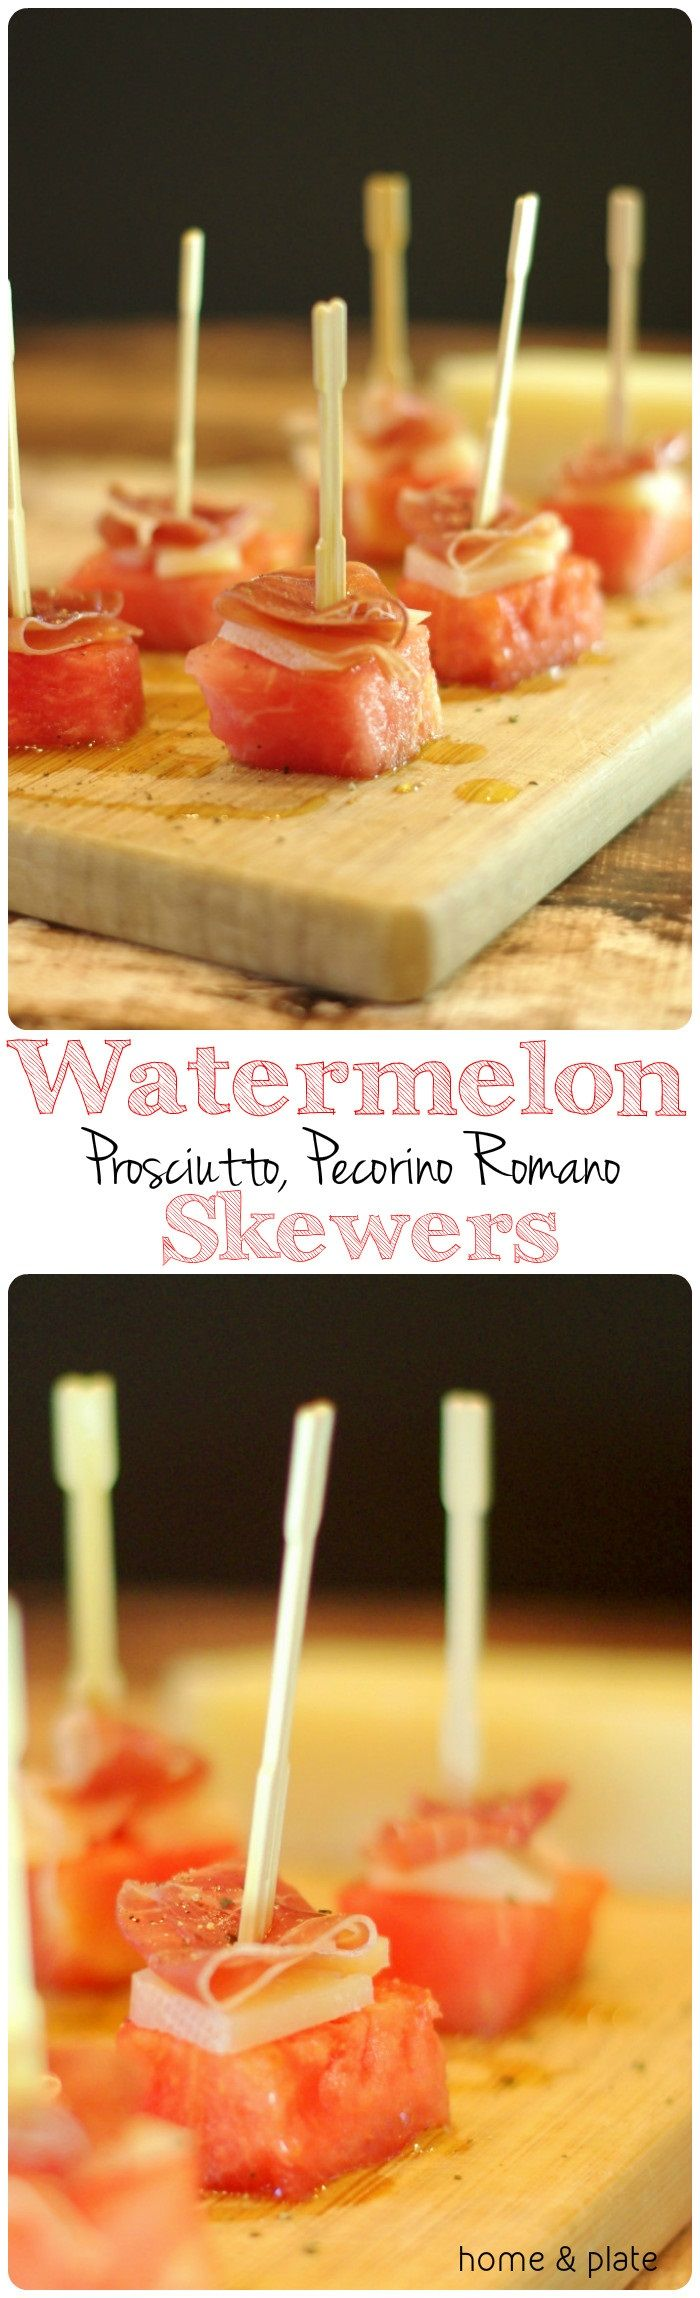 Watermelon, Prosciutto & Pecorino Romano Skewers | Home & Plate | www.homeandplate.com |  Salty and sweet go perfectly together and so does this appetizer that celebrates the sweetness of summer.